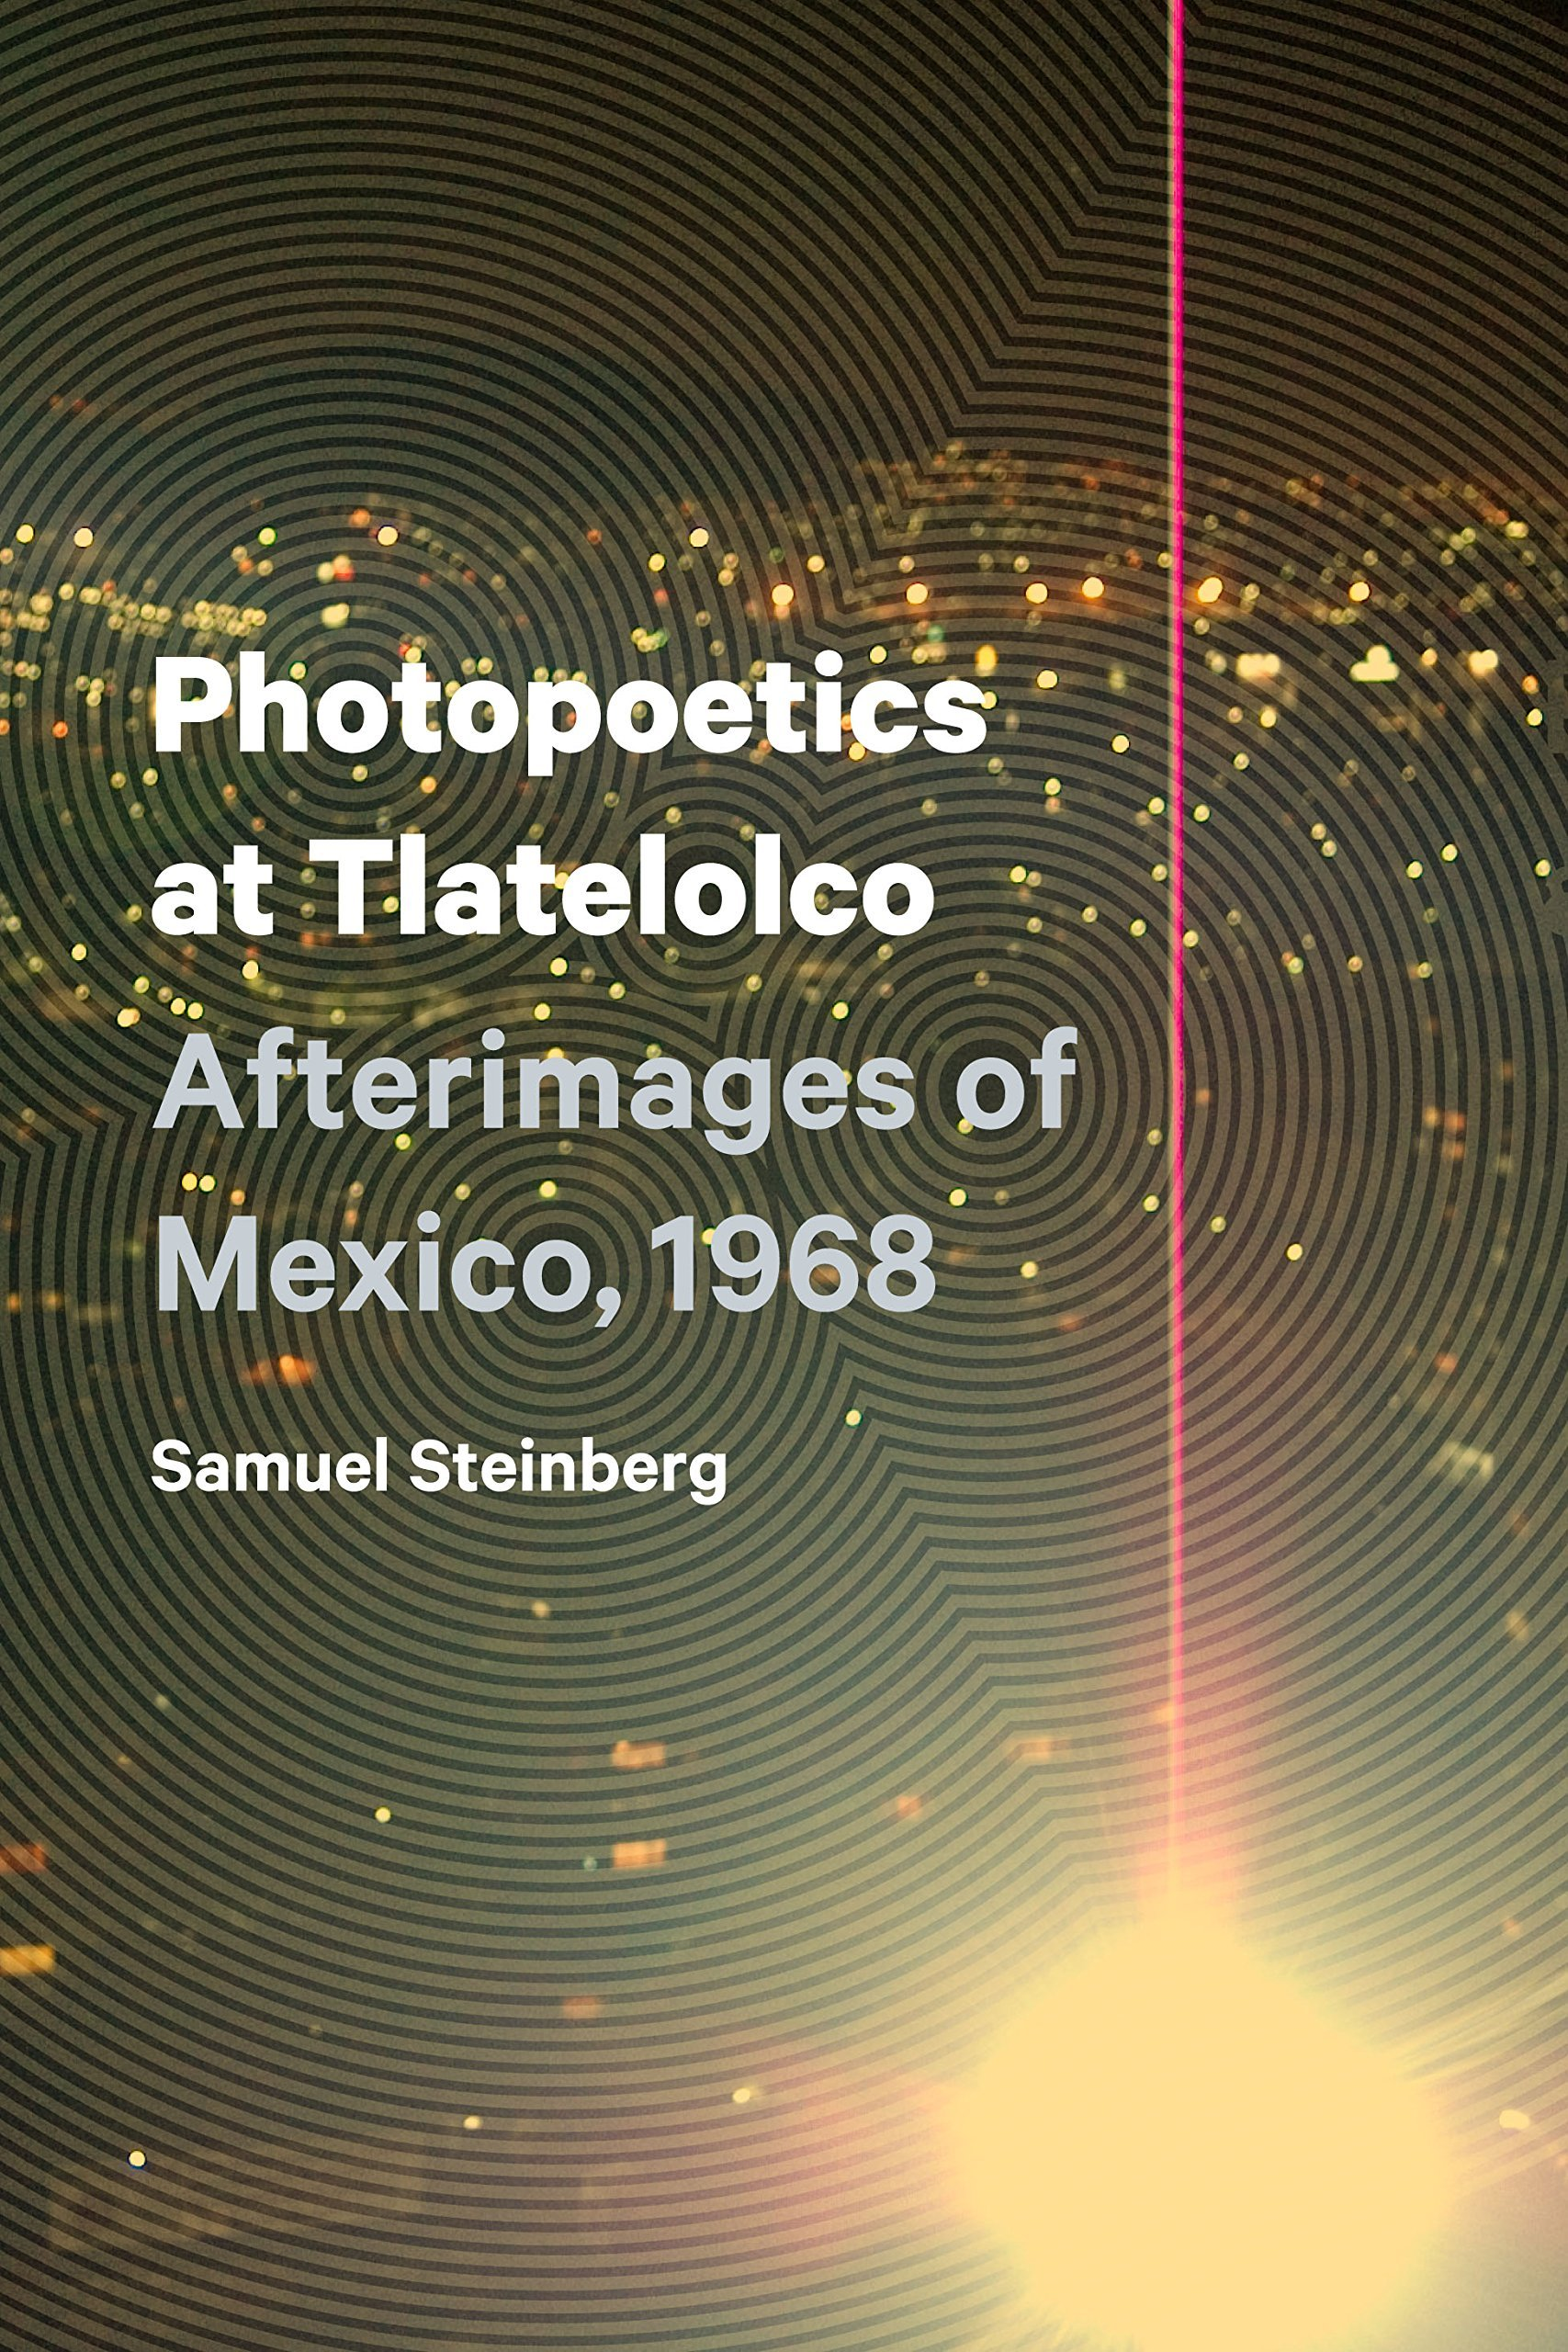 Photopoetics at Tlatelolco - Afterimages of Mexico, 1968